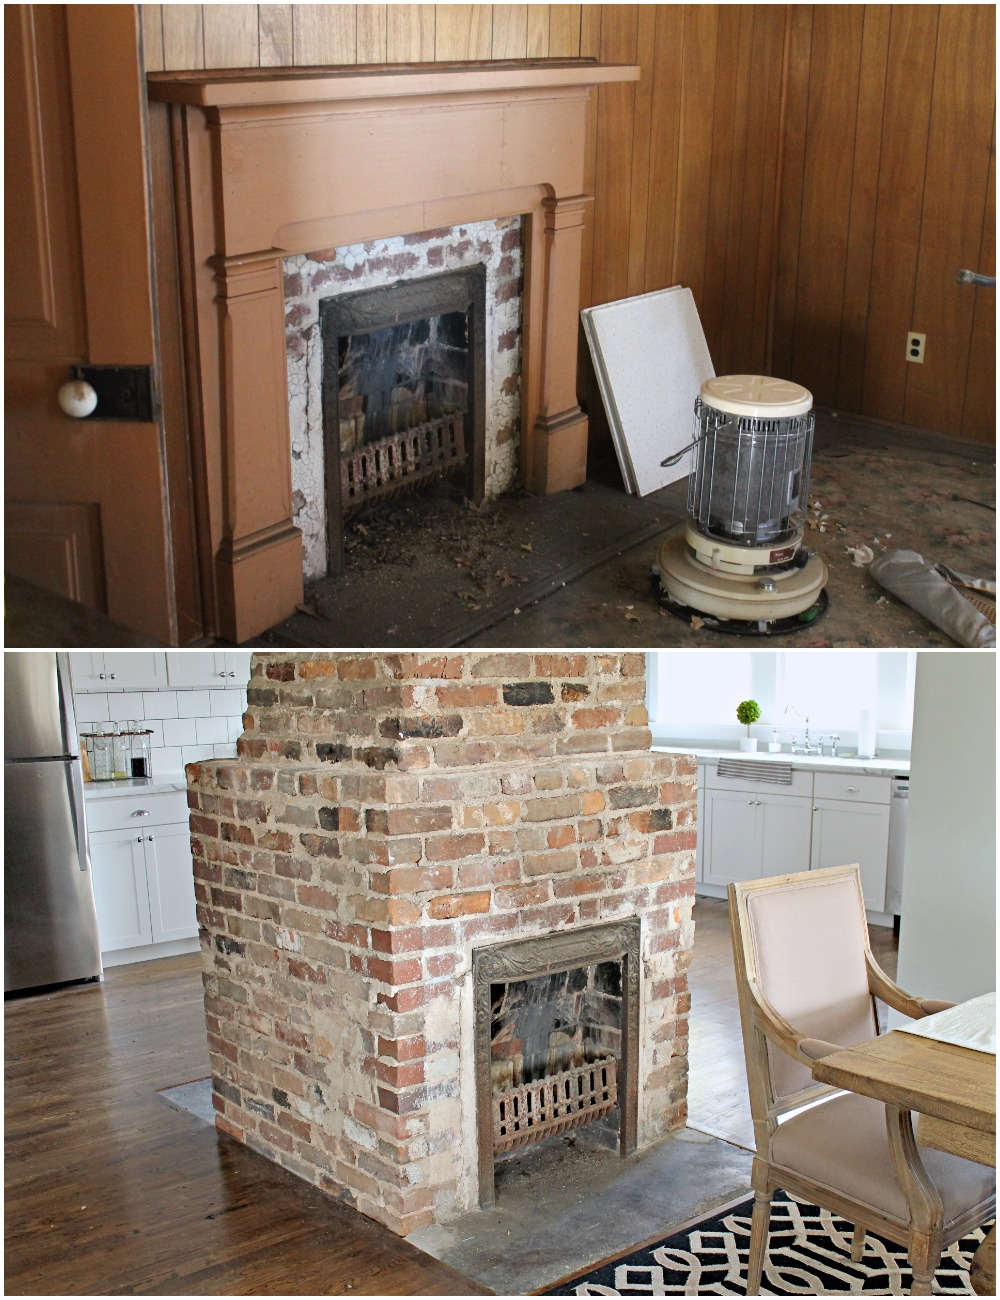 Elizabeth Burns Design  Budget-Friendly Fixer Upper Farmhouse Before and After House Flip - DIY Dining Room with Exposed Brick Fireplace - Sherwin Williams Silver Strand (1).jpg